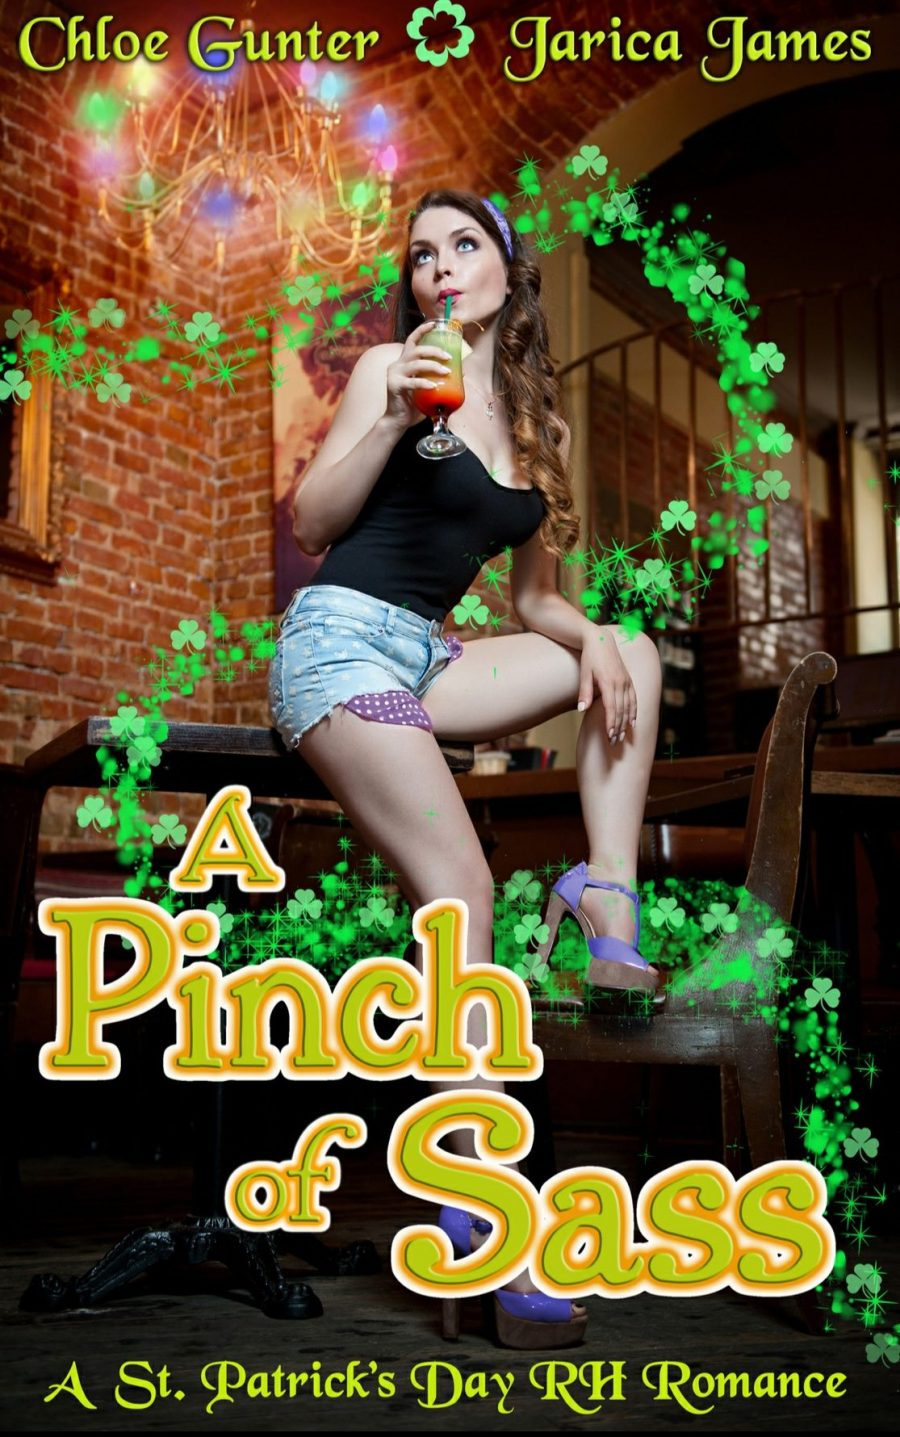 Pinch of Sass by Chloe Gunter and Jarica james - A Book Review #BookReview #RH #WhyChoose #FastBurn #StandAlone #HEA #HOT